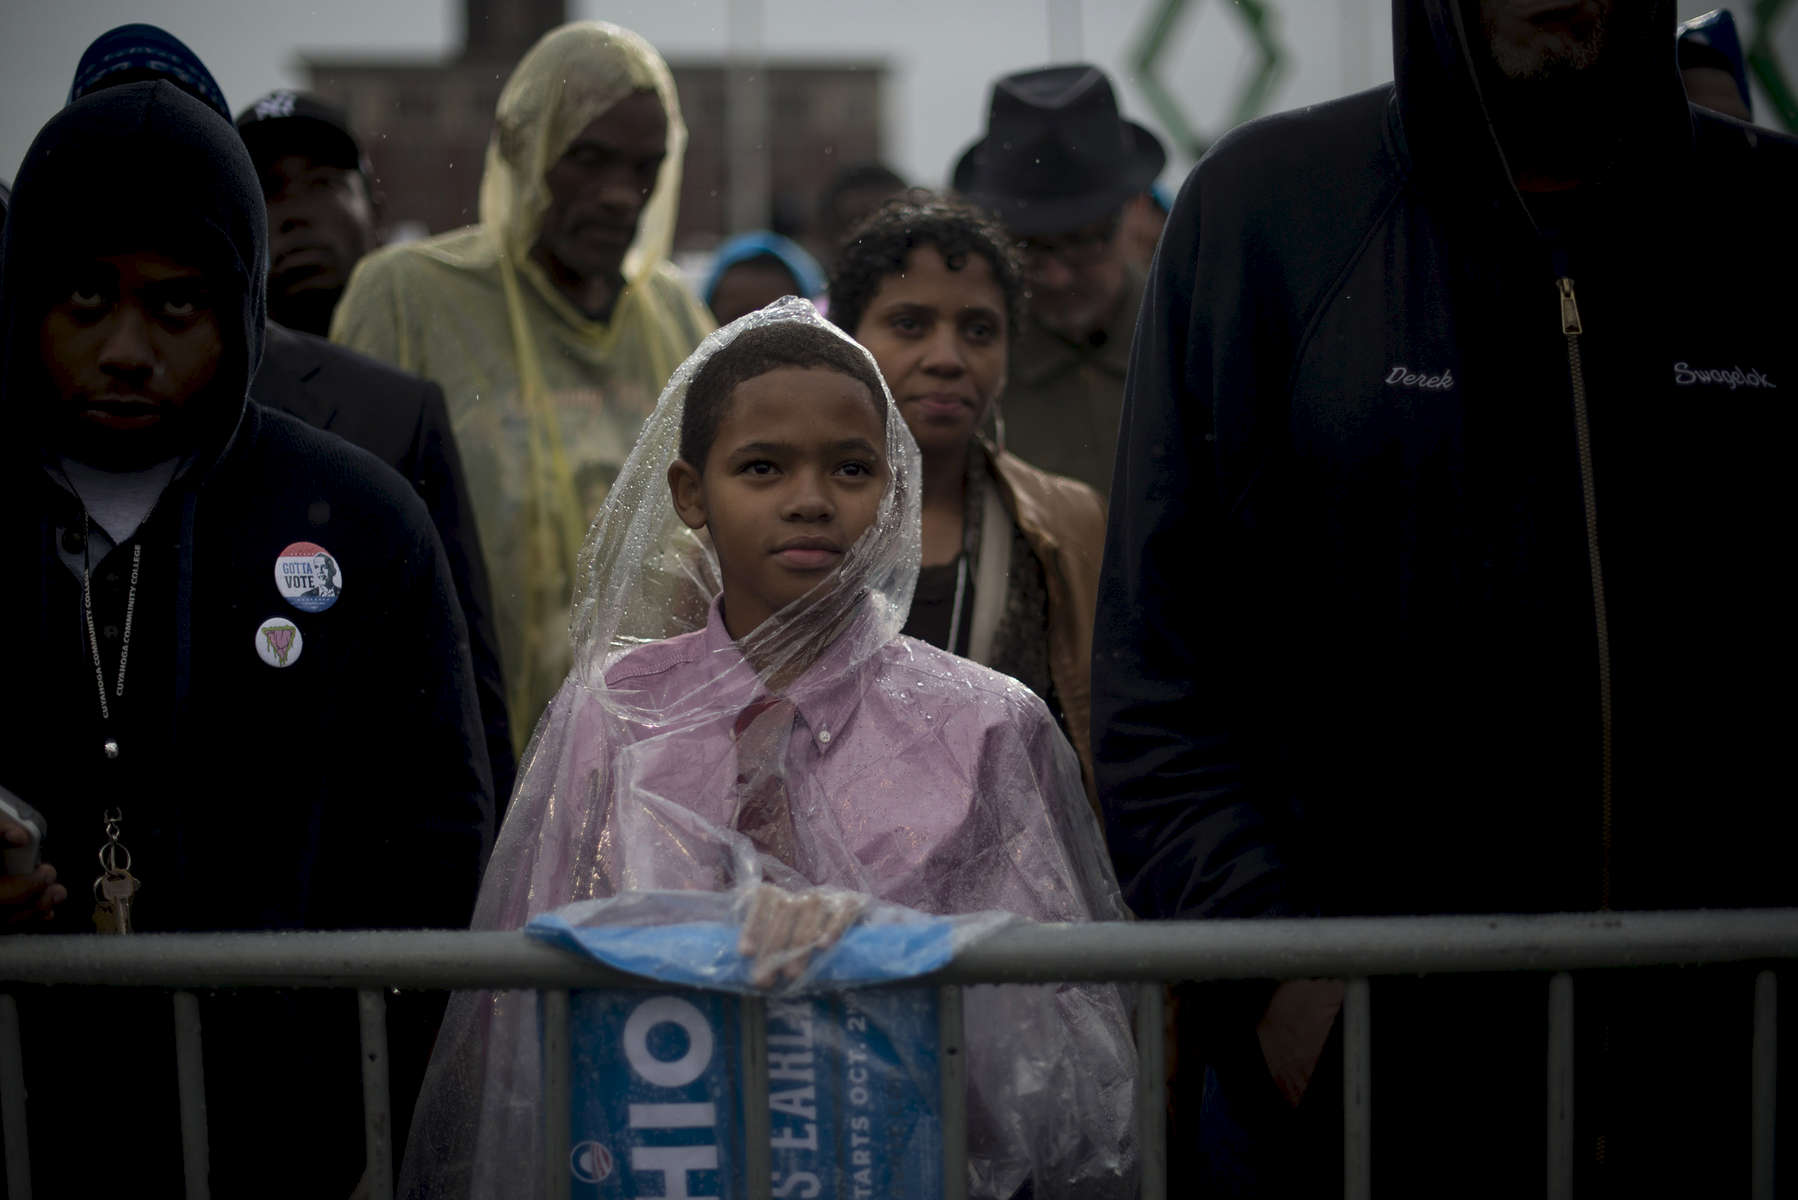 October 5, 2012 - Cleveland, OH- A young supporter listens to President Barack Obama speak during a rain soaked rally in Cleveland, OH.  (Scout Tufankjian for Obama for America/Polaris)